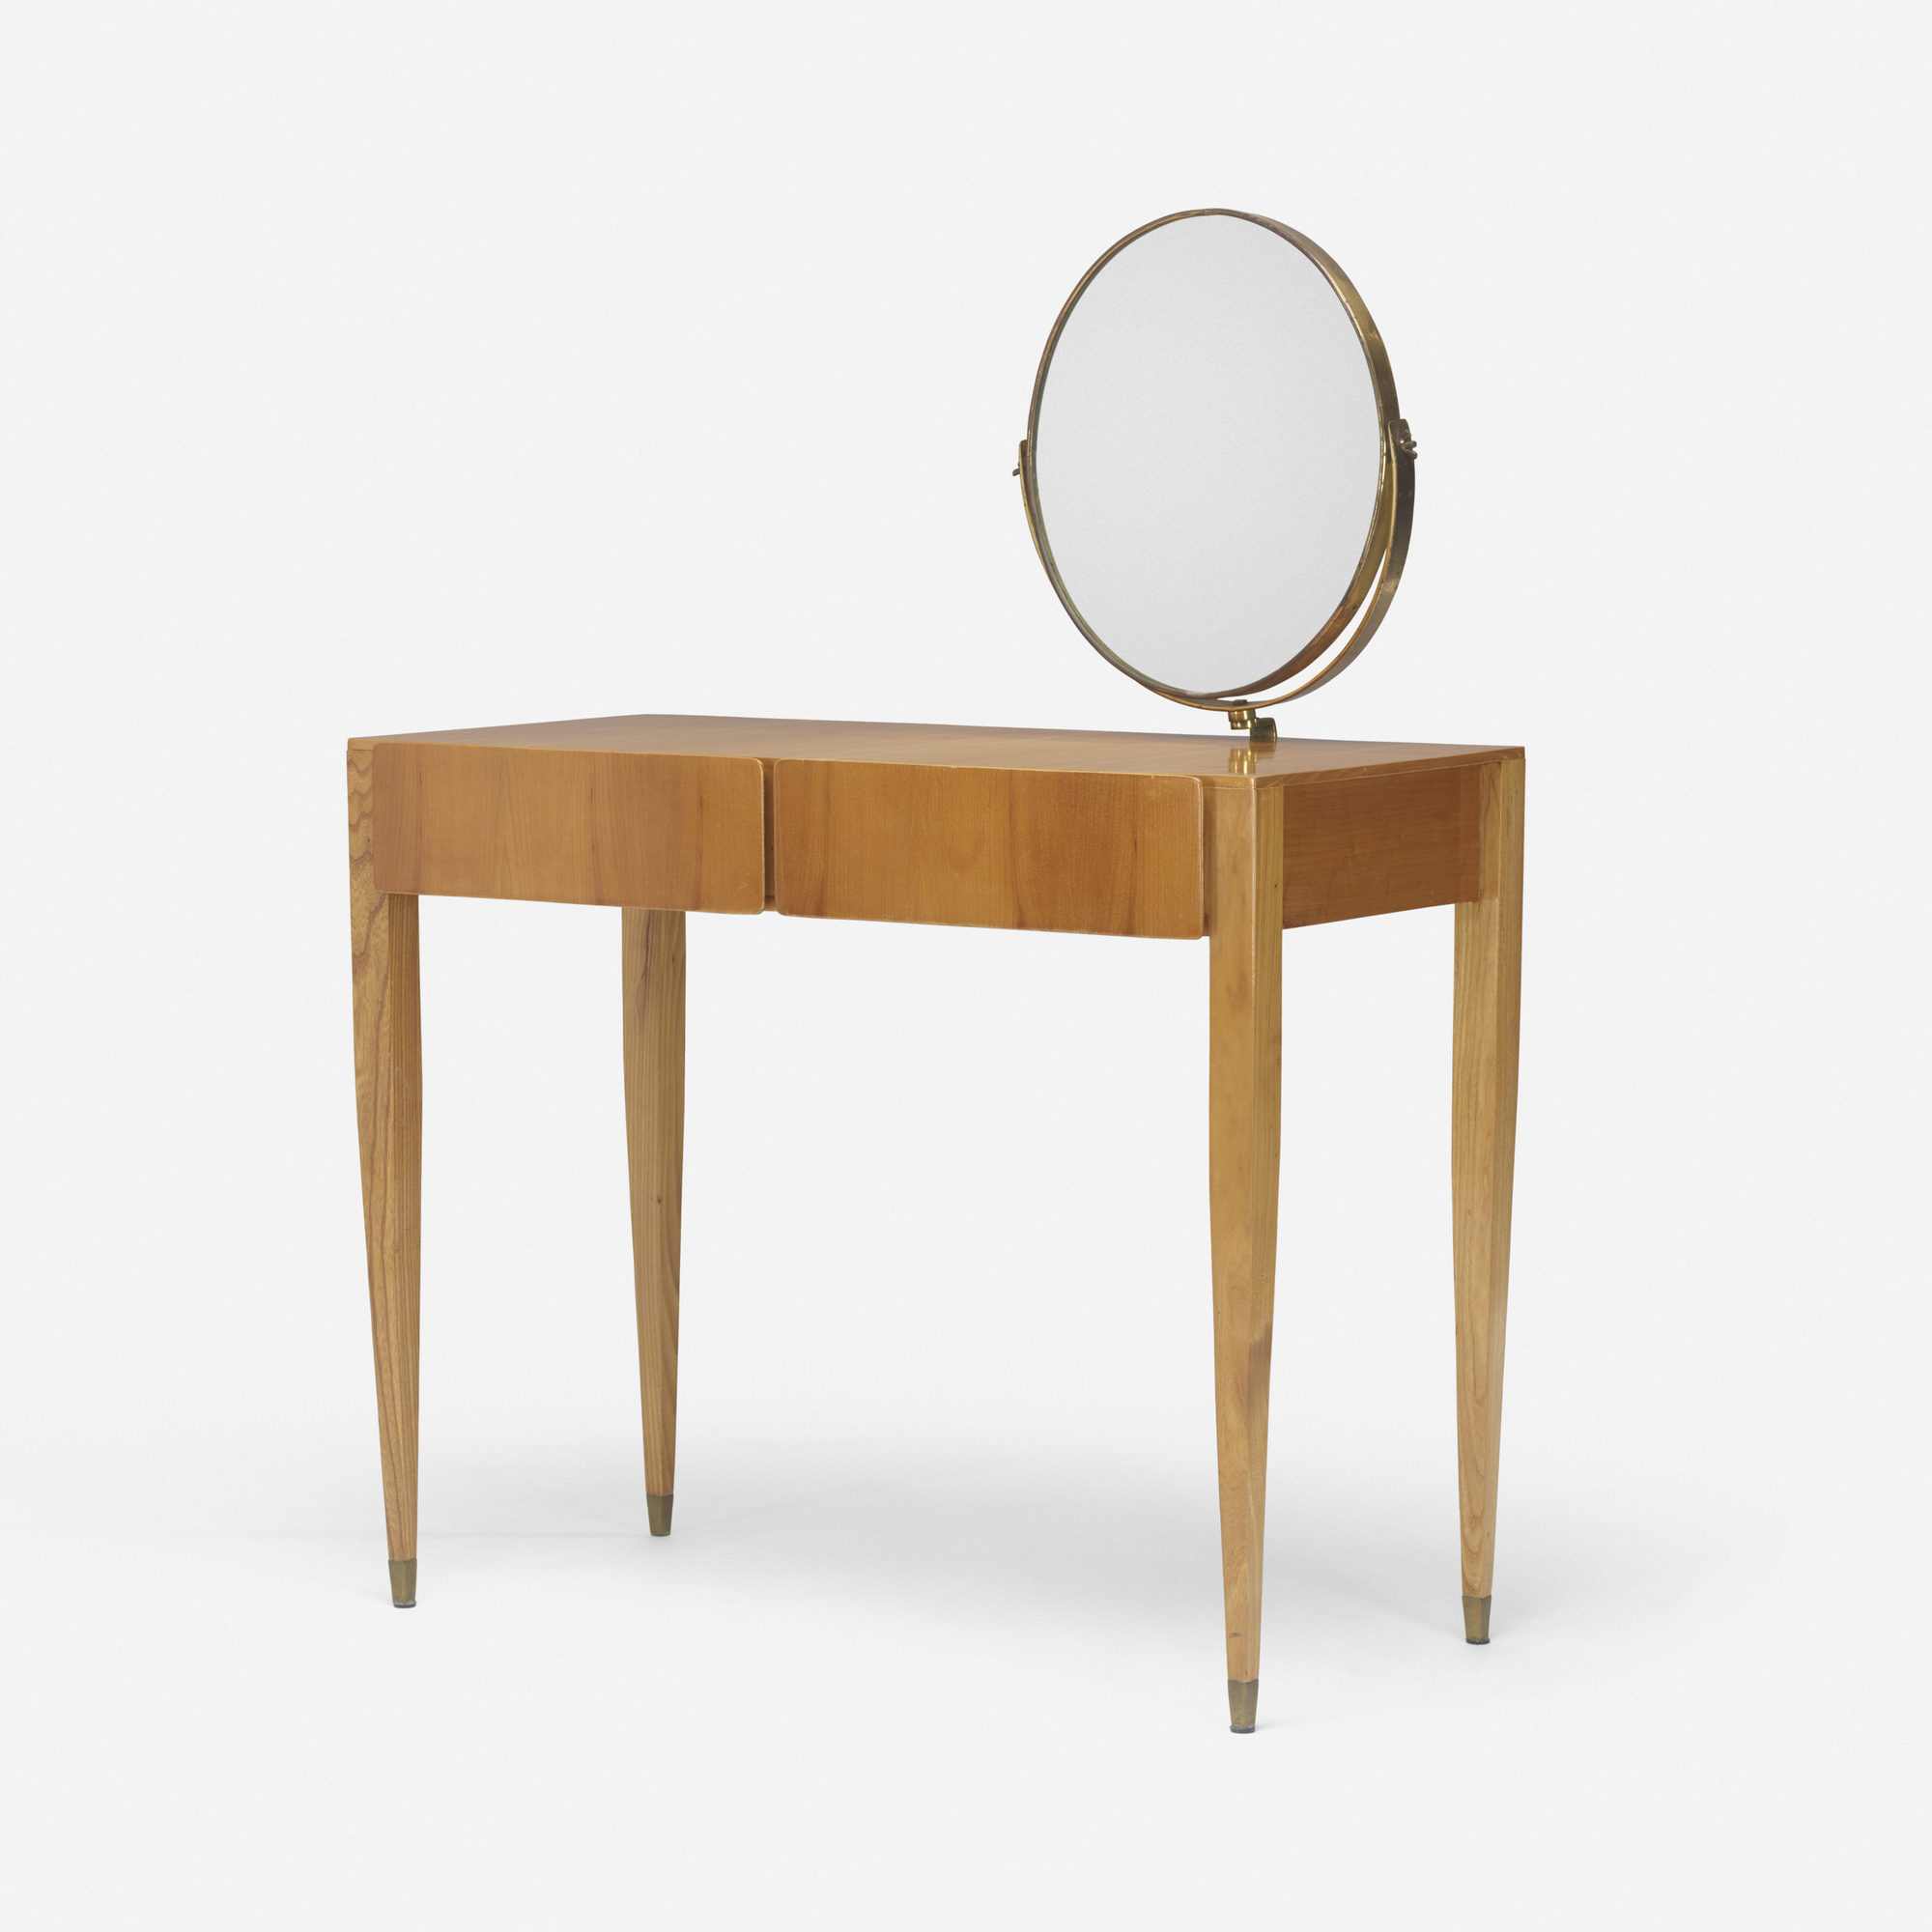 307: Gio Ponti / vanity from the Royal Hotel, Naples (1 of 3)